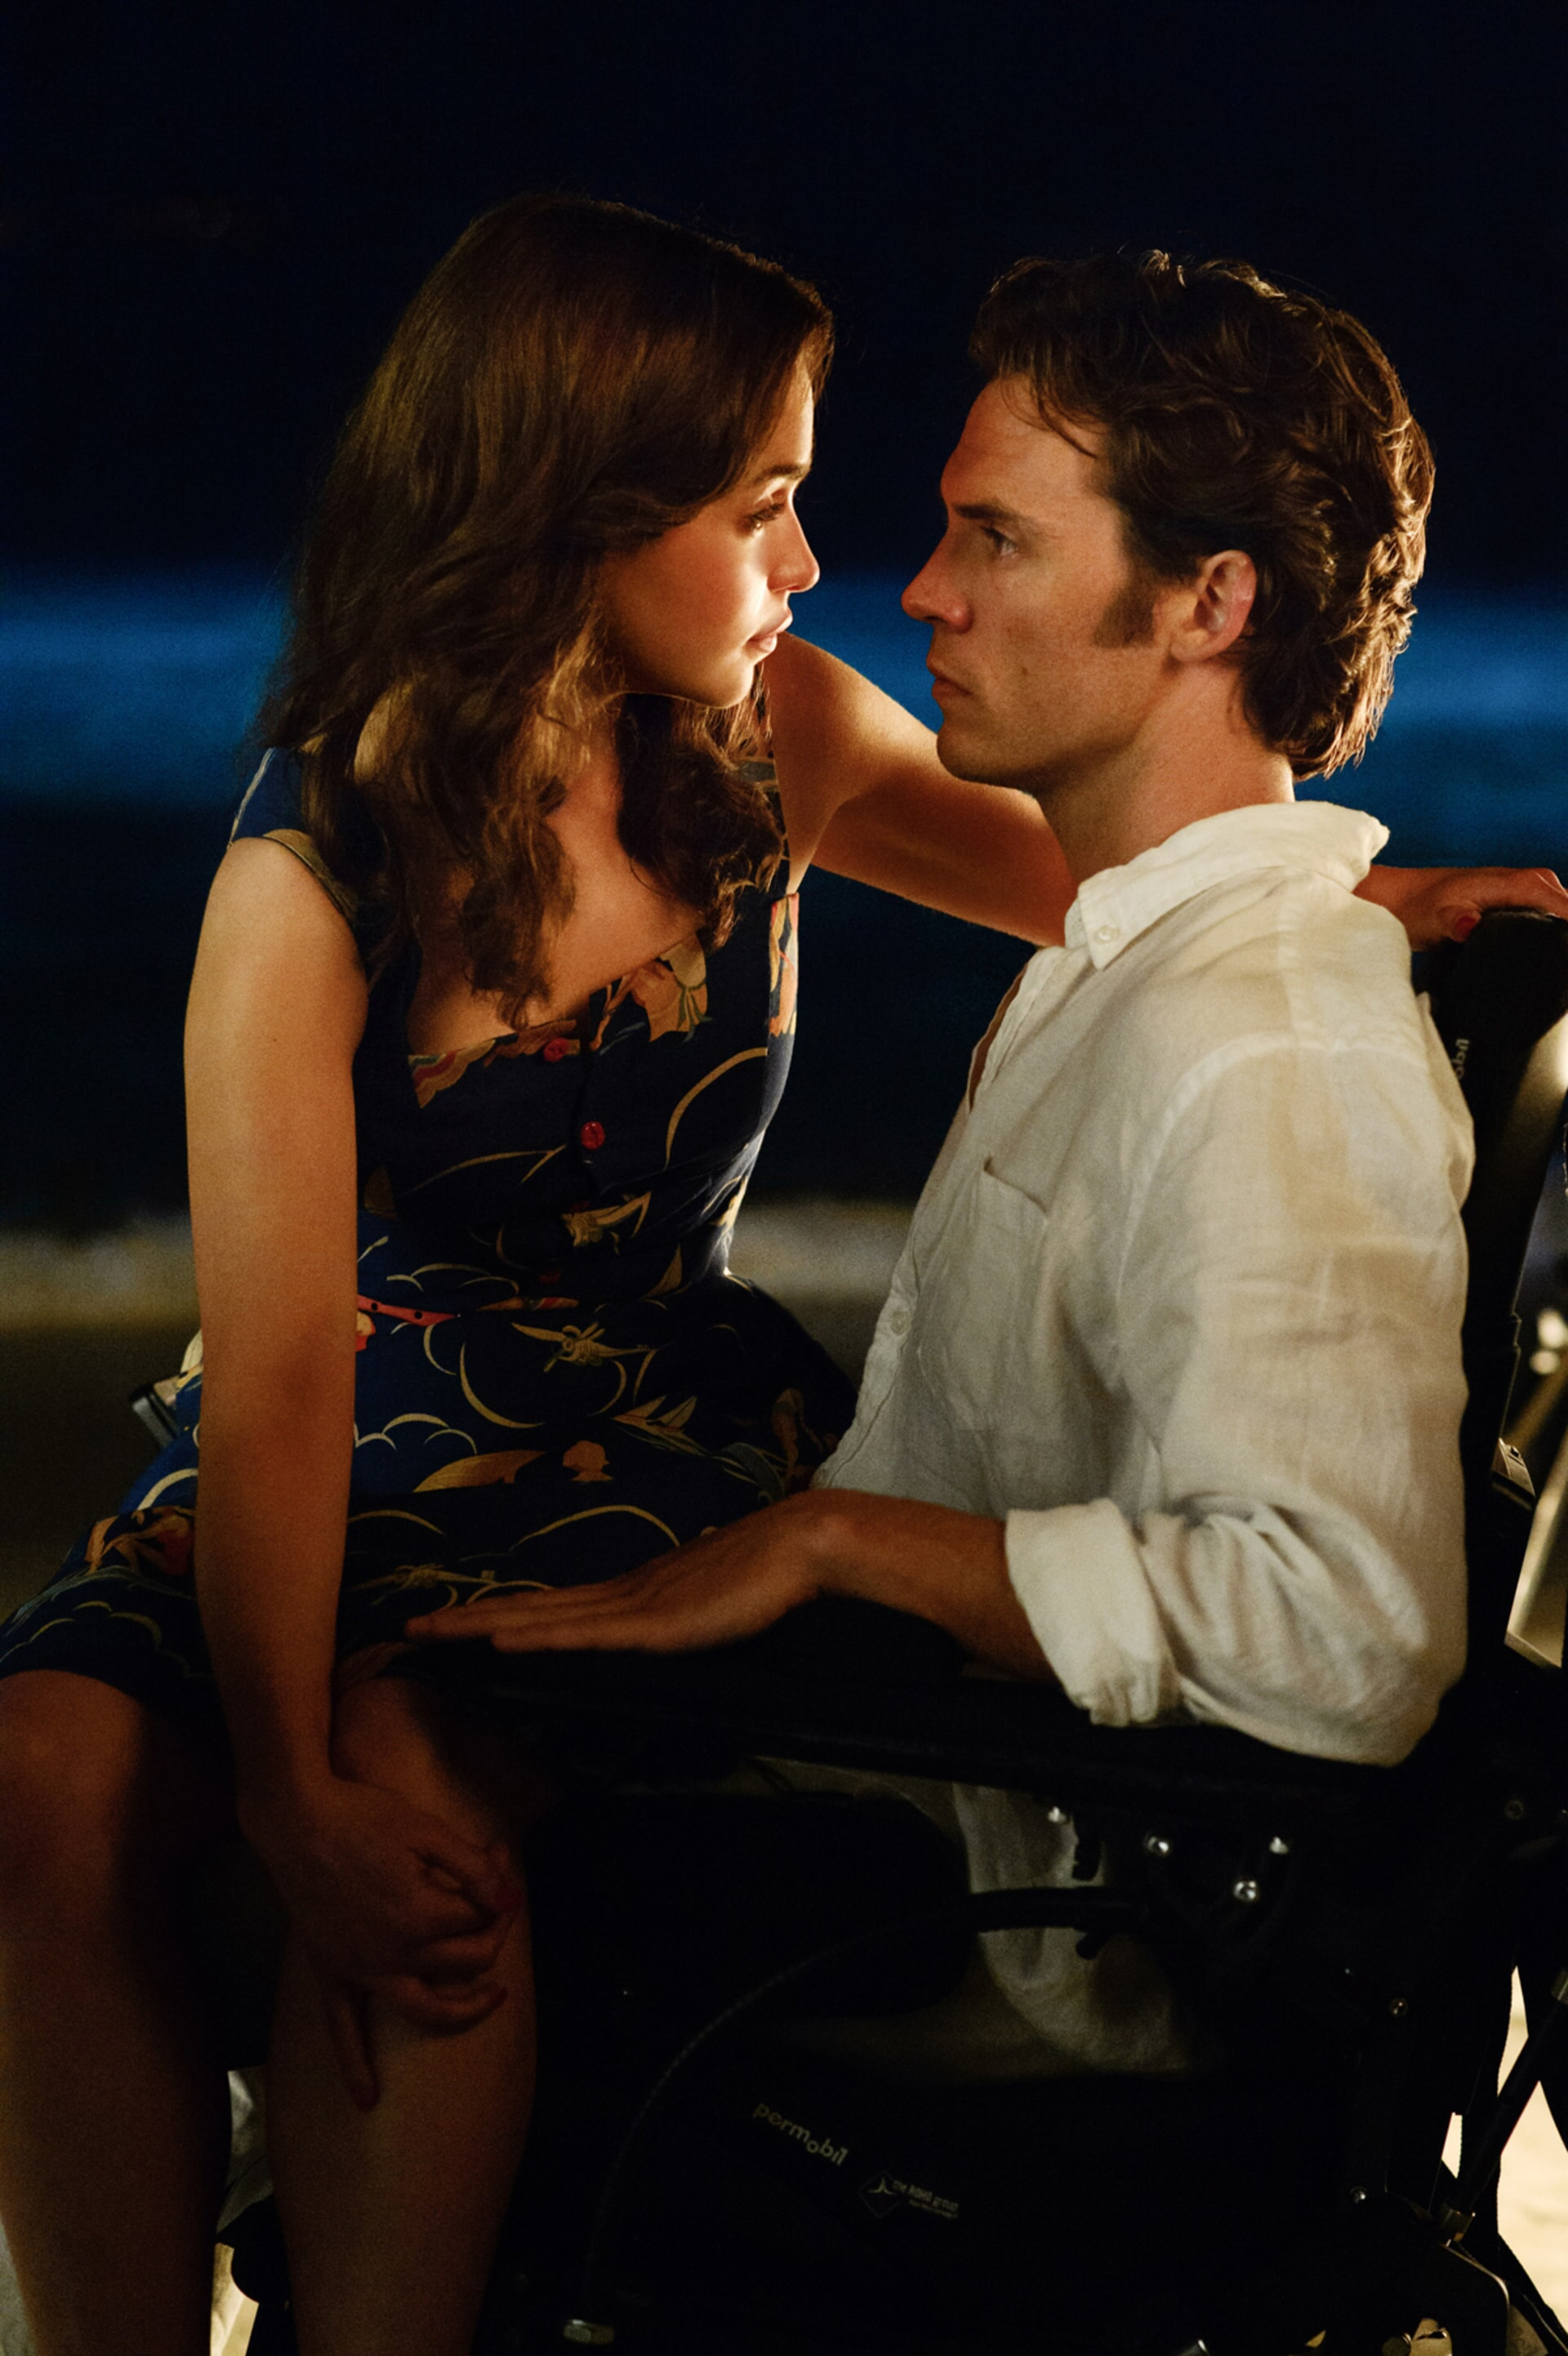 EMILIA CLARKE as Lou Clark sitting on the lap of SAM CLAFLIN as Will Traynor on a beach at nighttime.